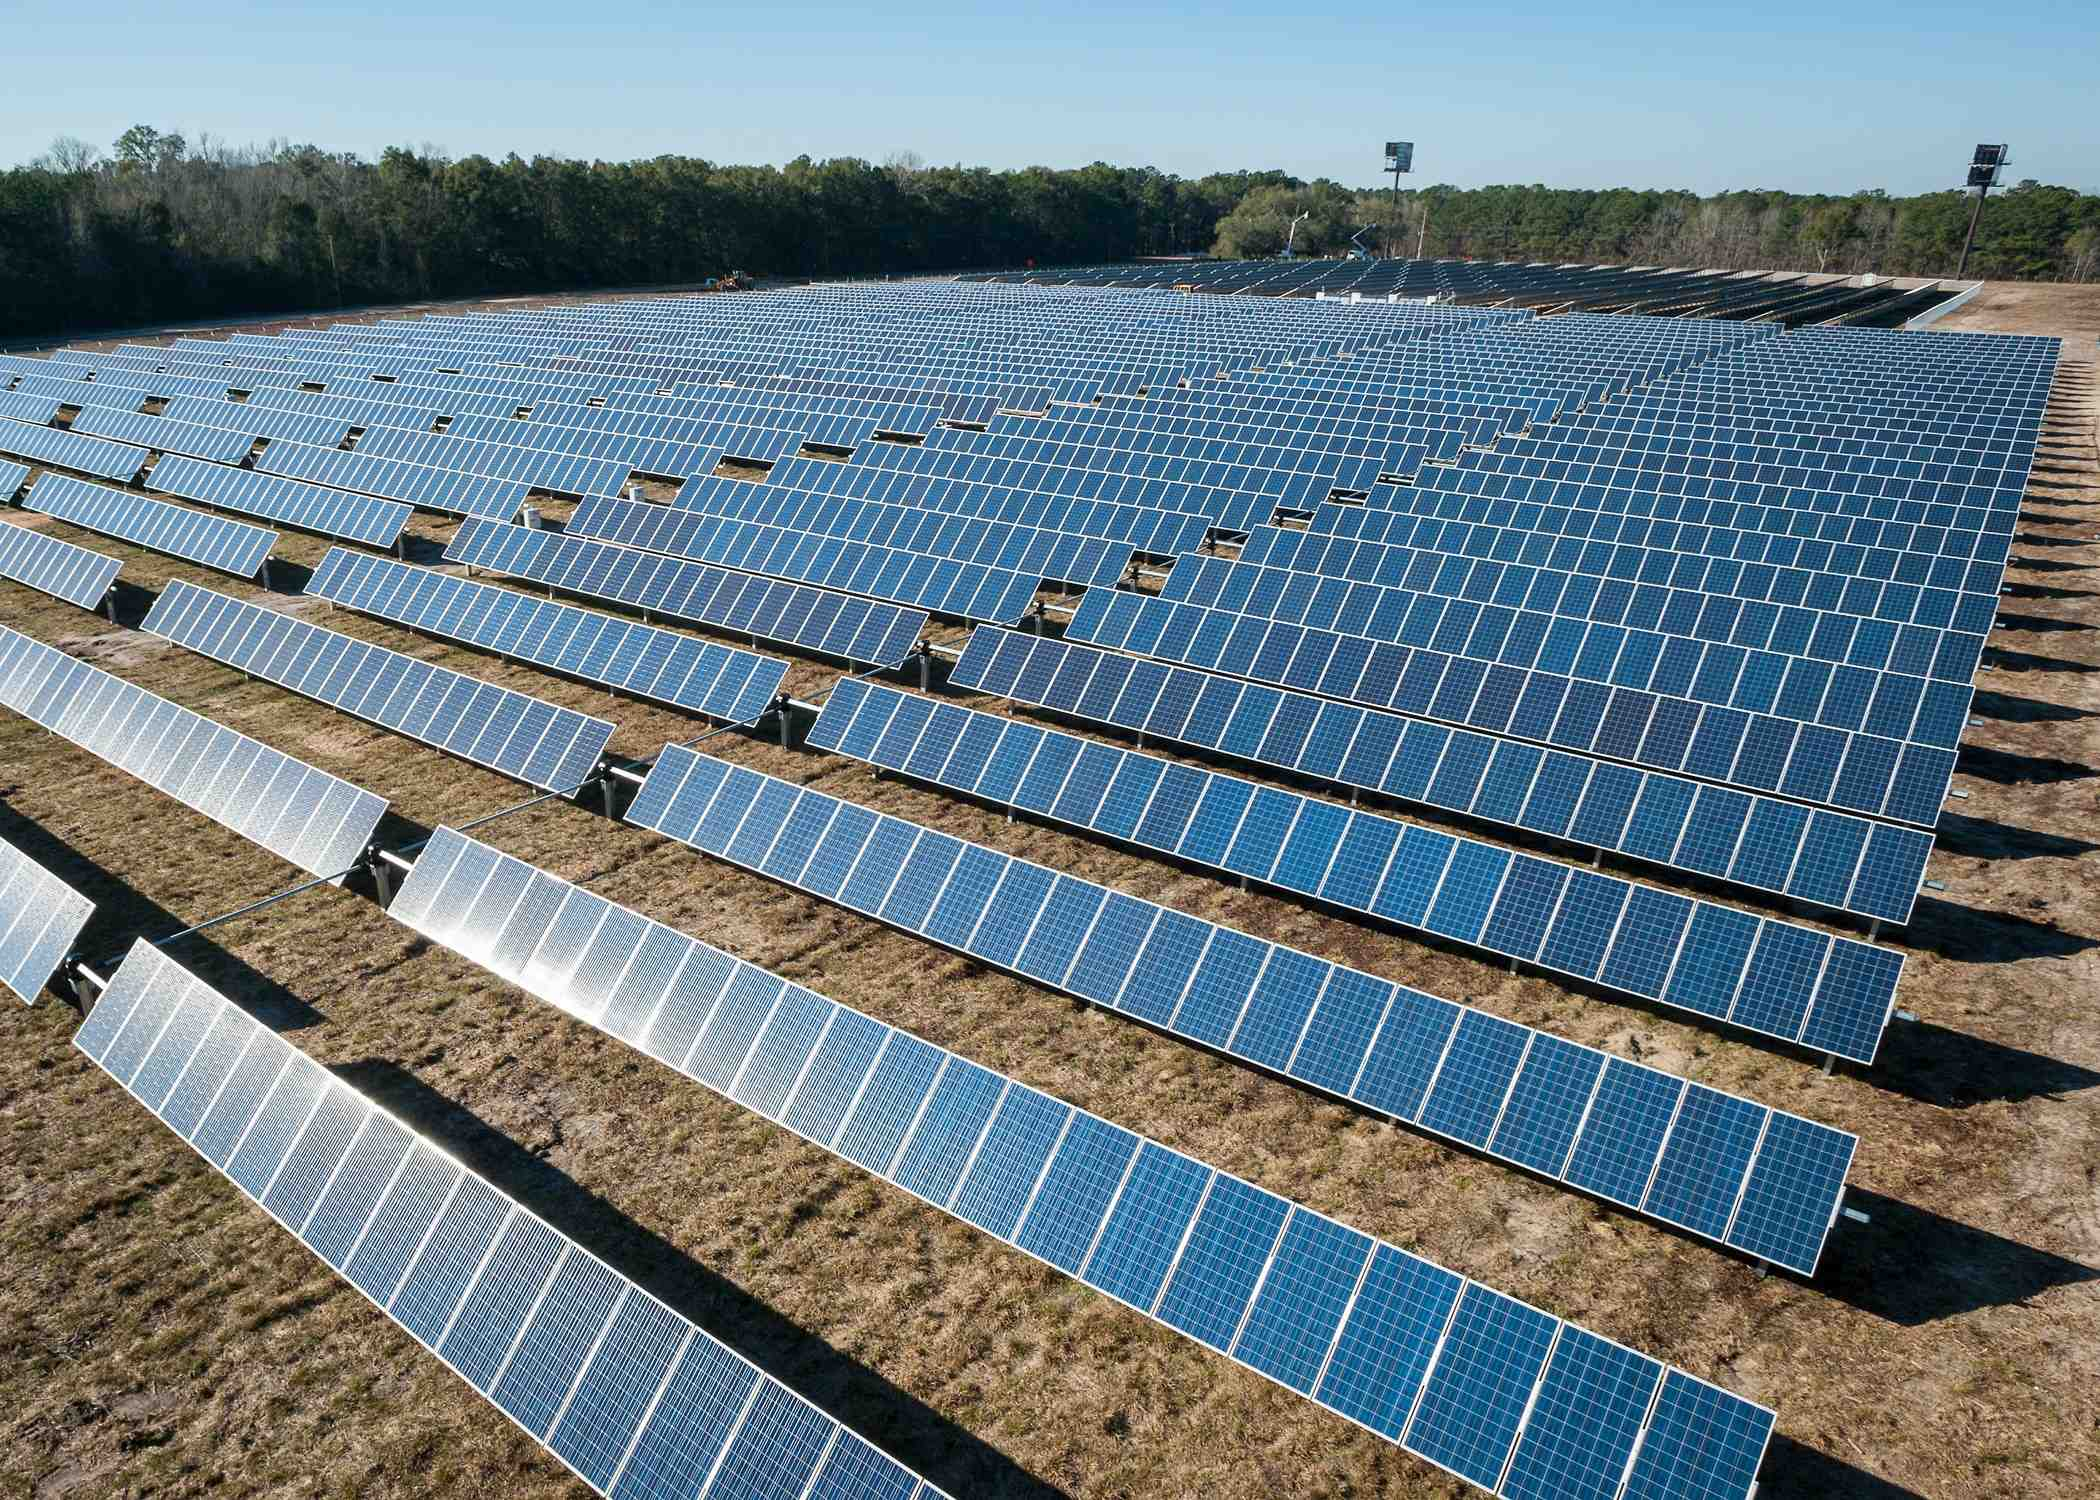 How much does a 1 acre solar farm cost?